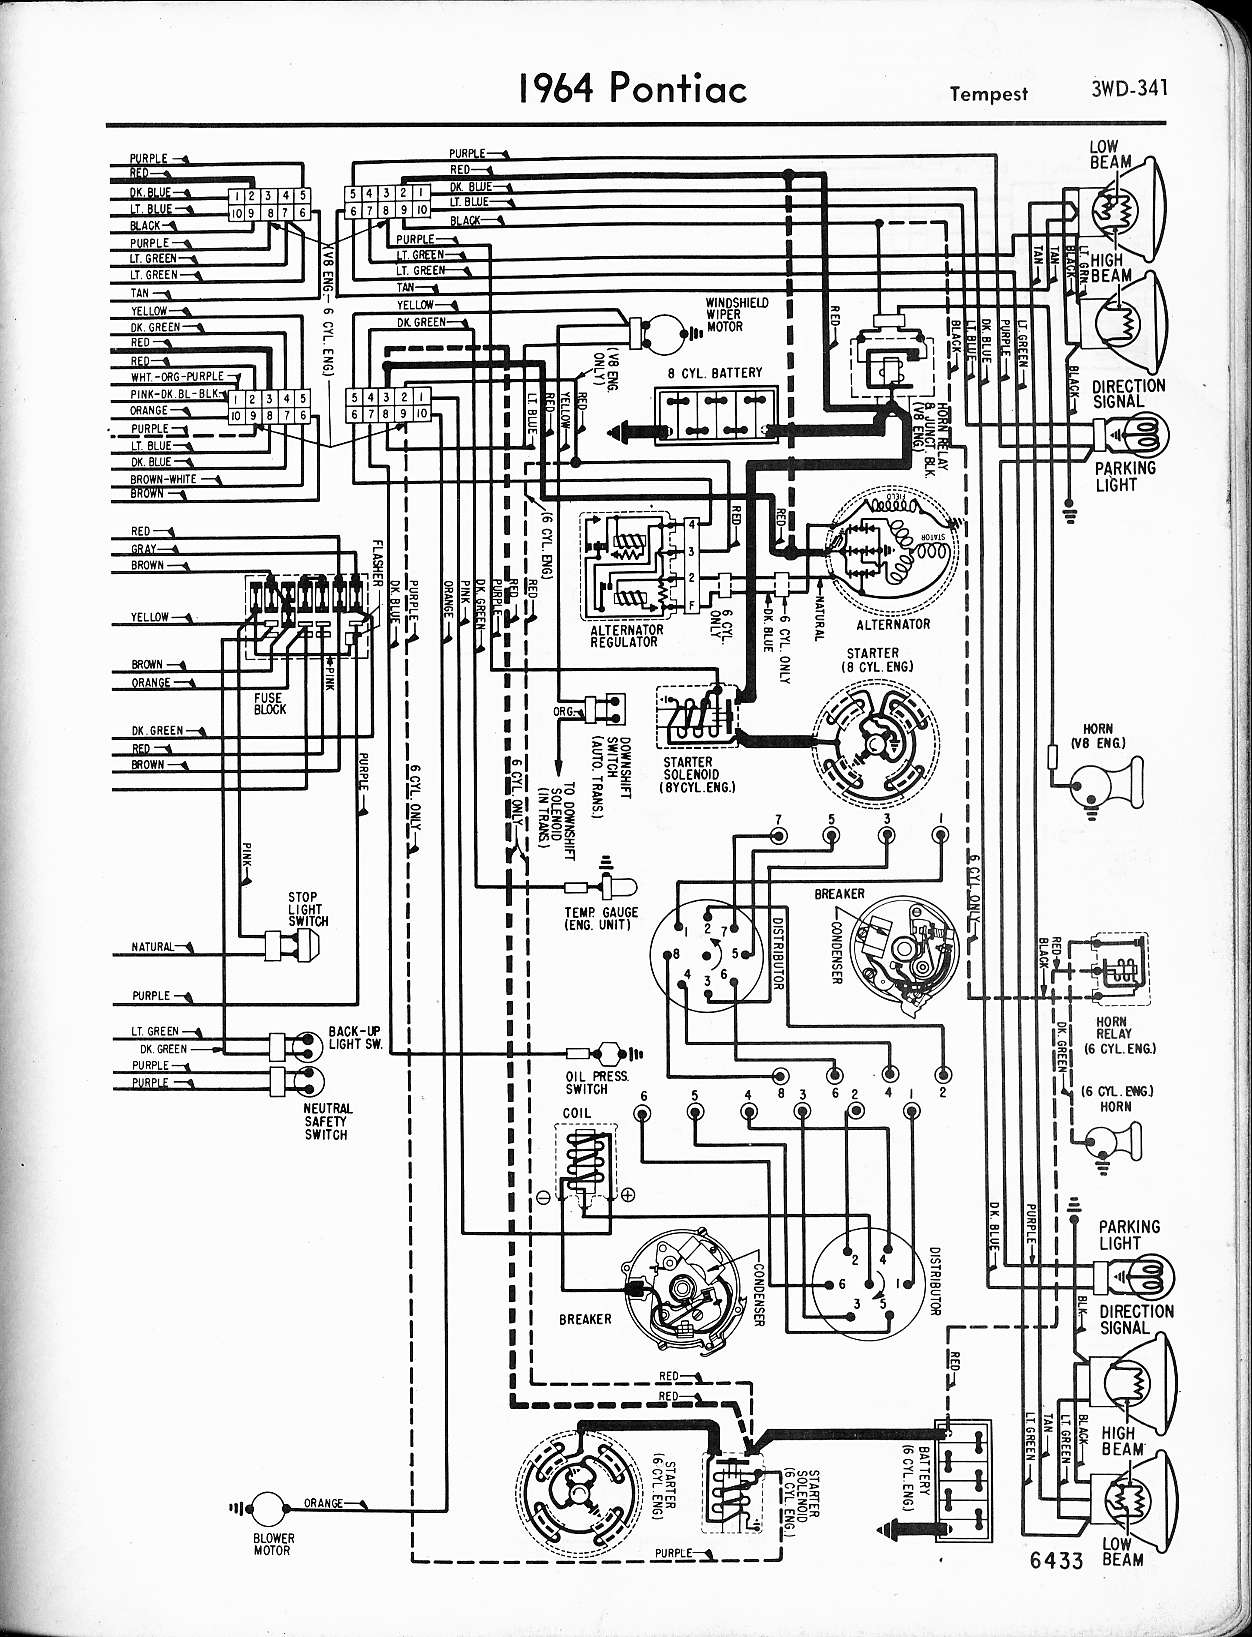 1966 pontiac wiring diagram wiring diagrams schematics 1966 gto wiring diagram 1966 chevelle wiring diagram